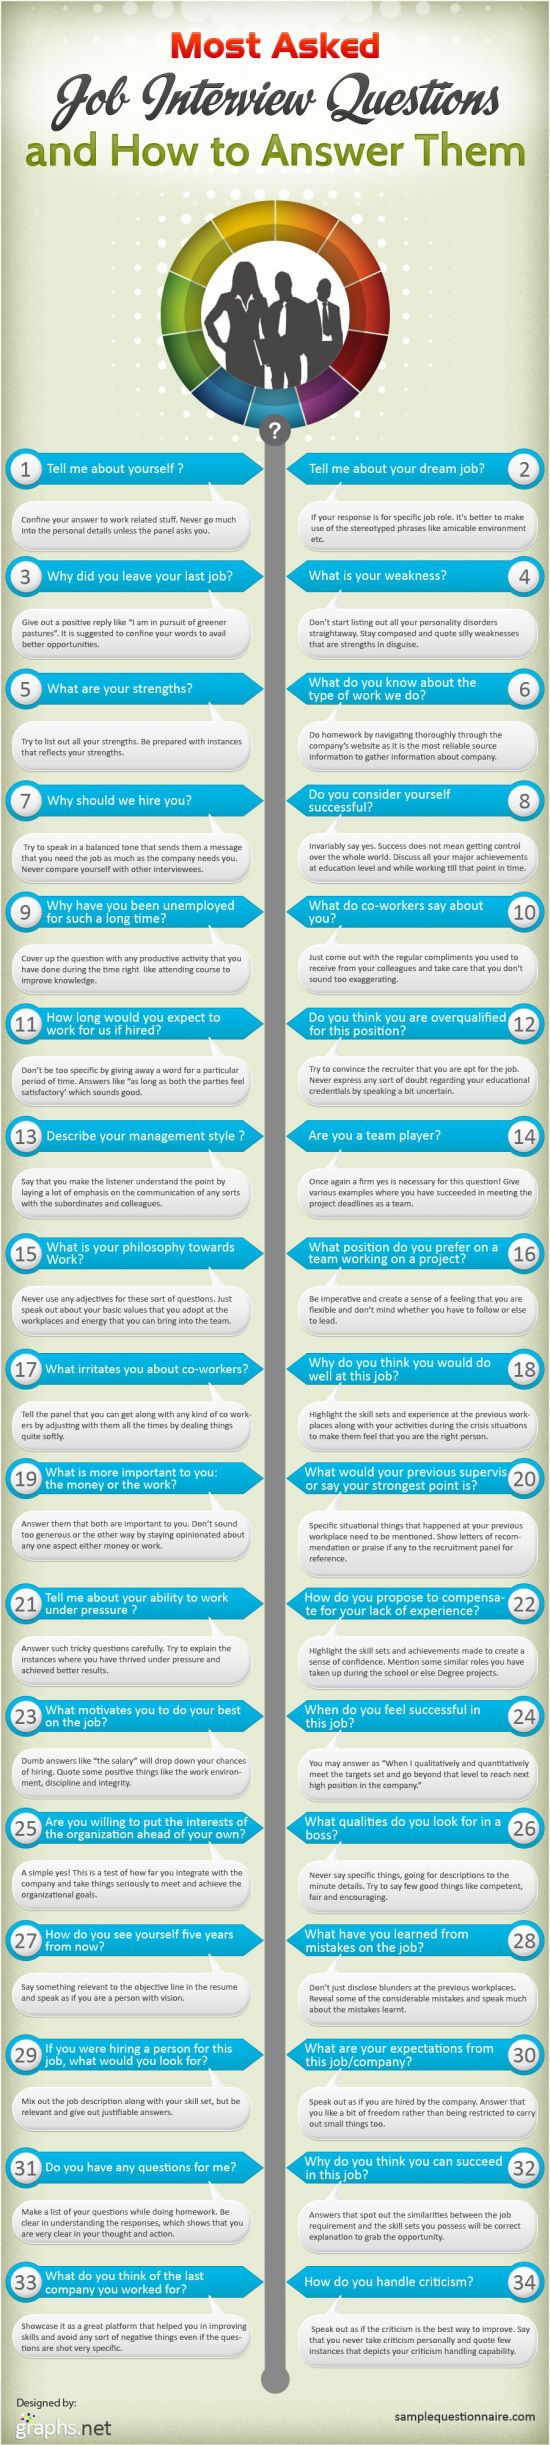 17 best ideas about interviewing tips interview 34 most asked job interview questions how to answer them